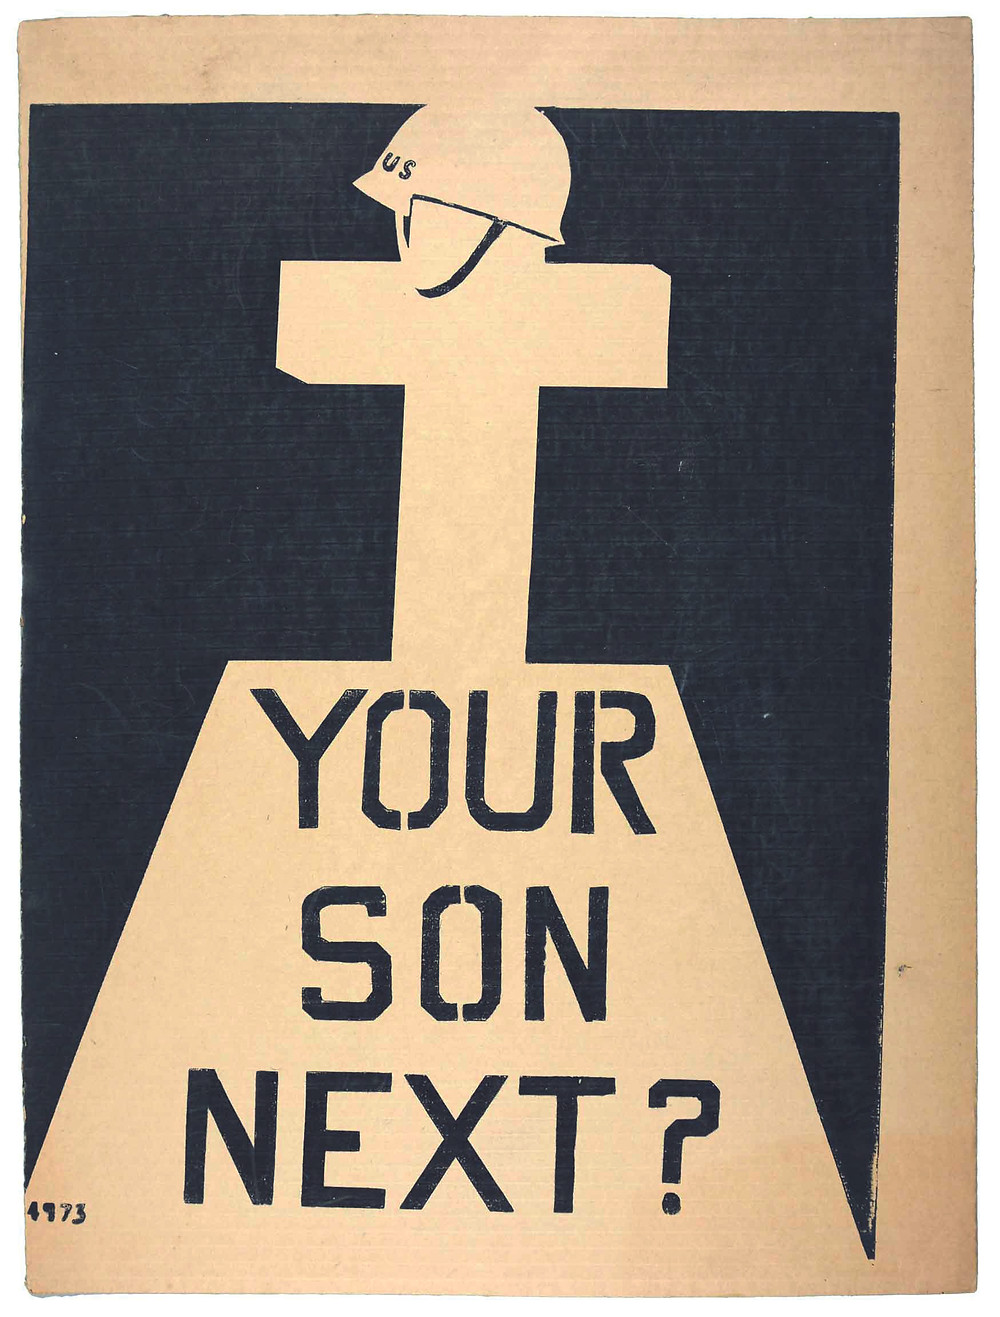 """Your Son Next?"" by the Berkeley Political Poster Workshop, 1970. Photograph used by permission from the Shapero Modern, London, U.K."